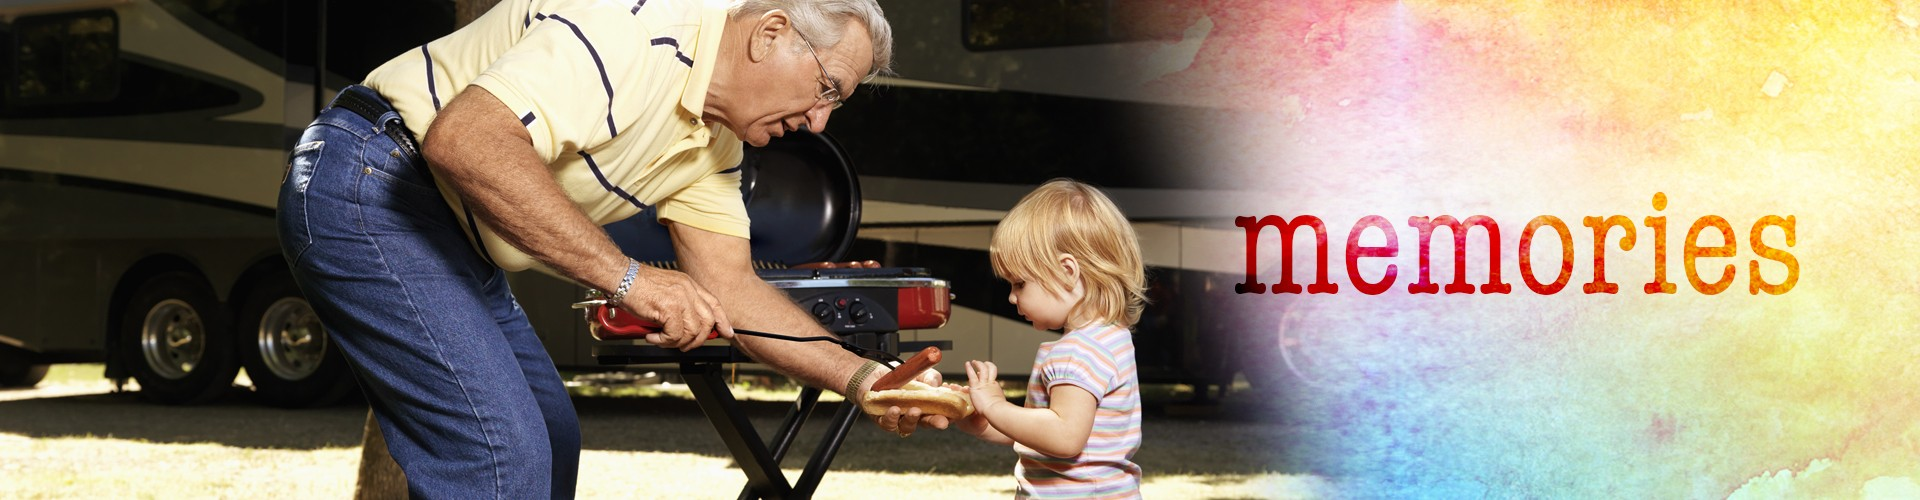 RV Beautiful America RV Lifestyle grandpa and child camping eating